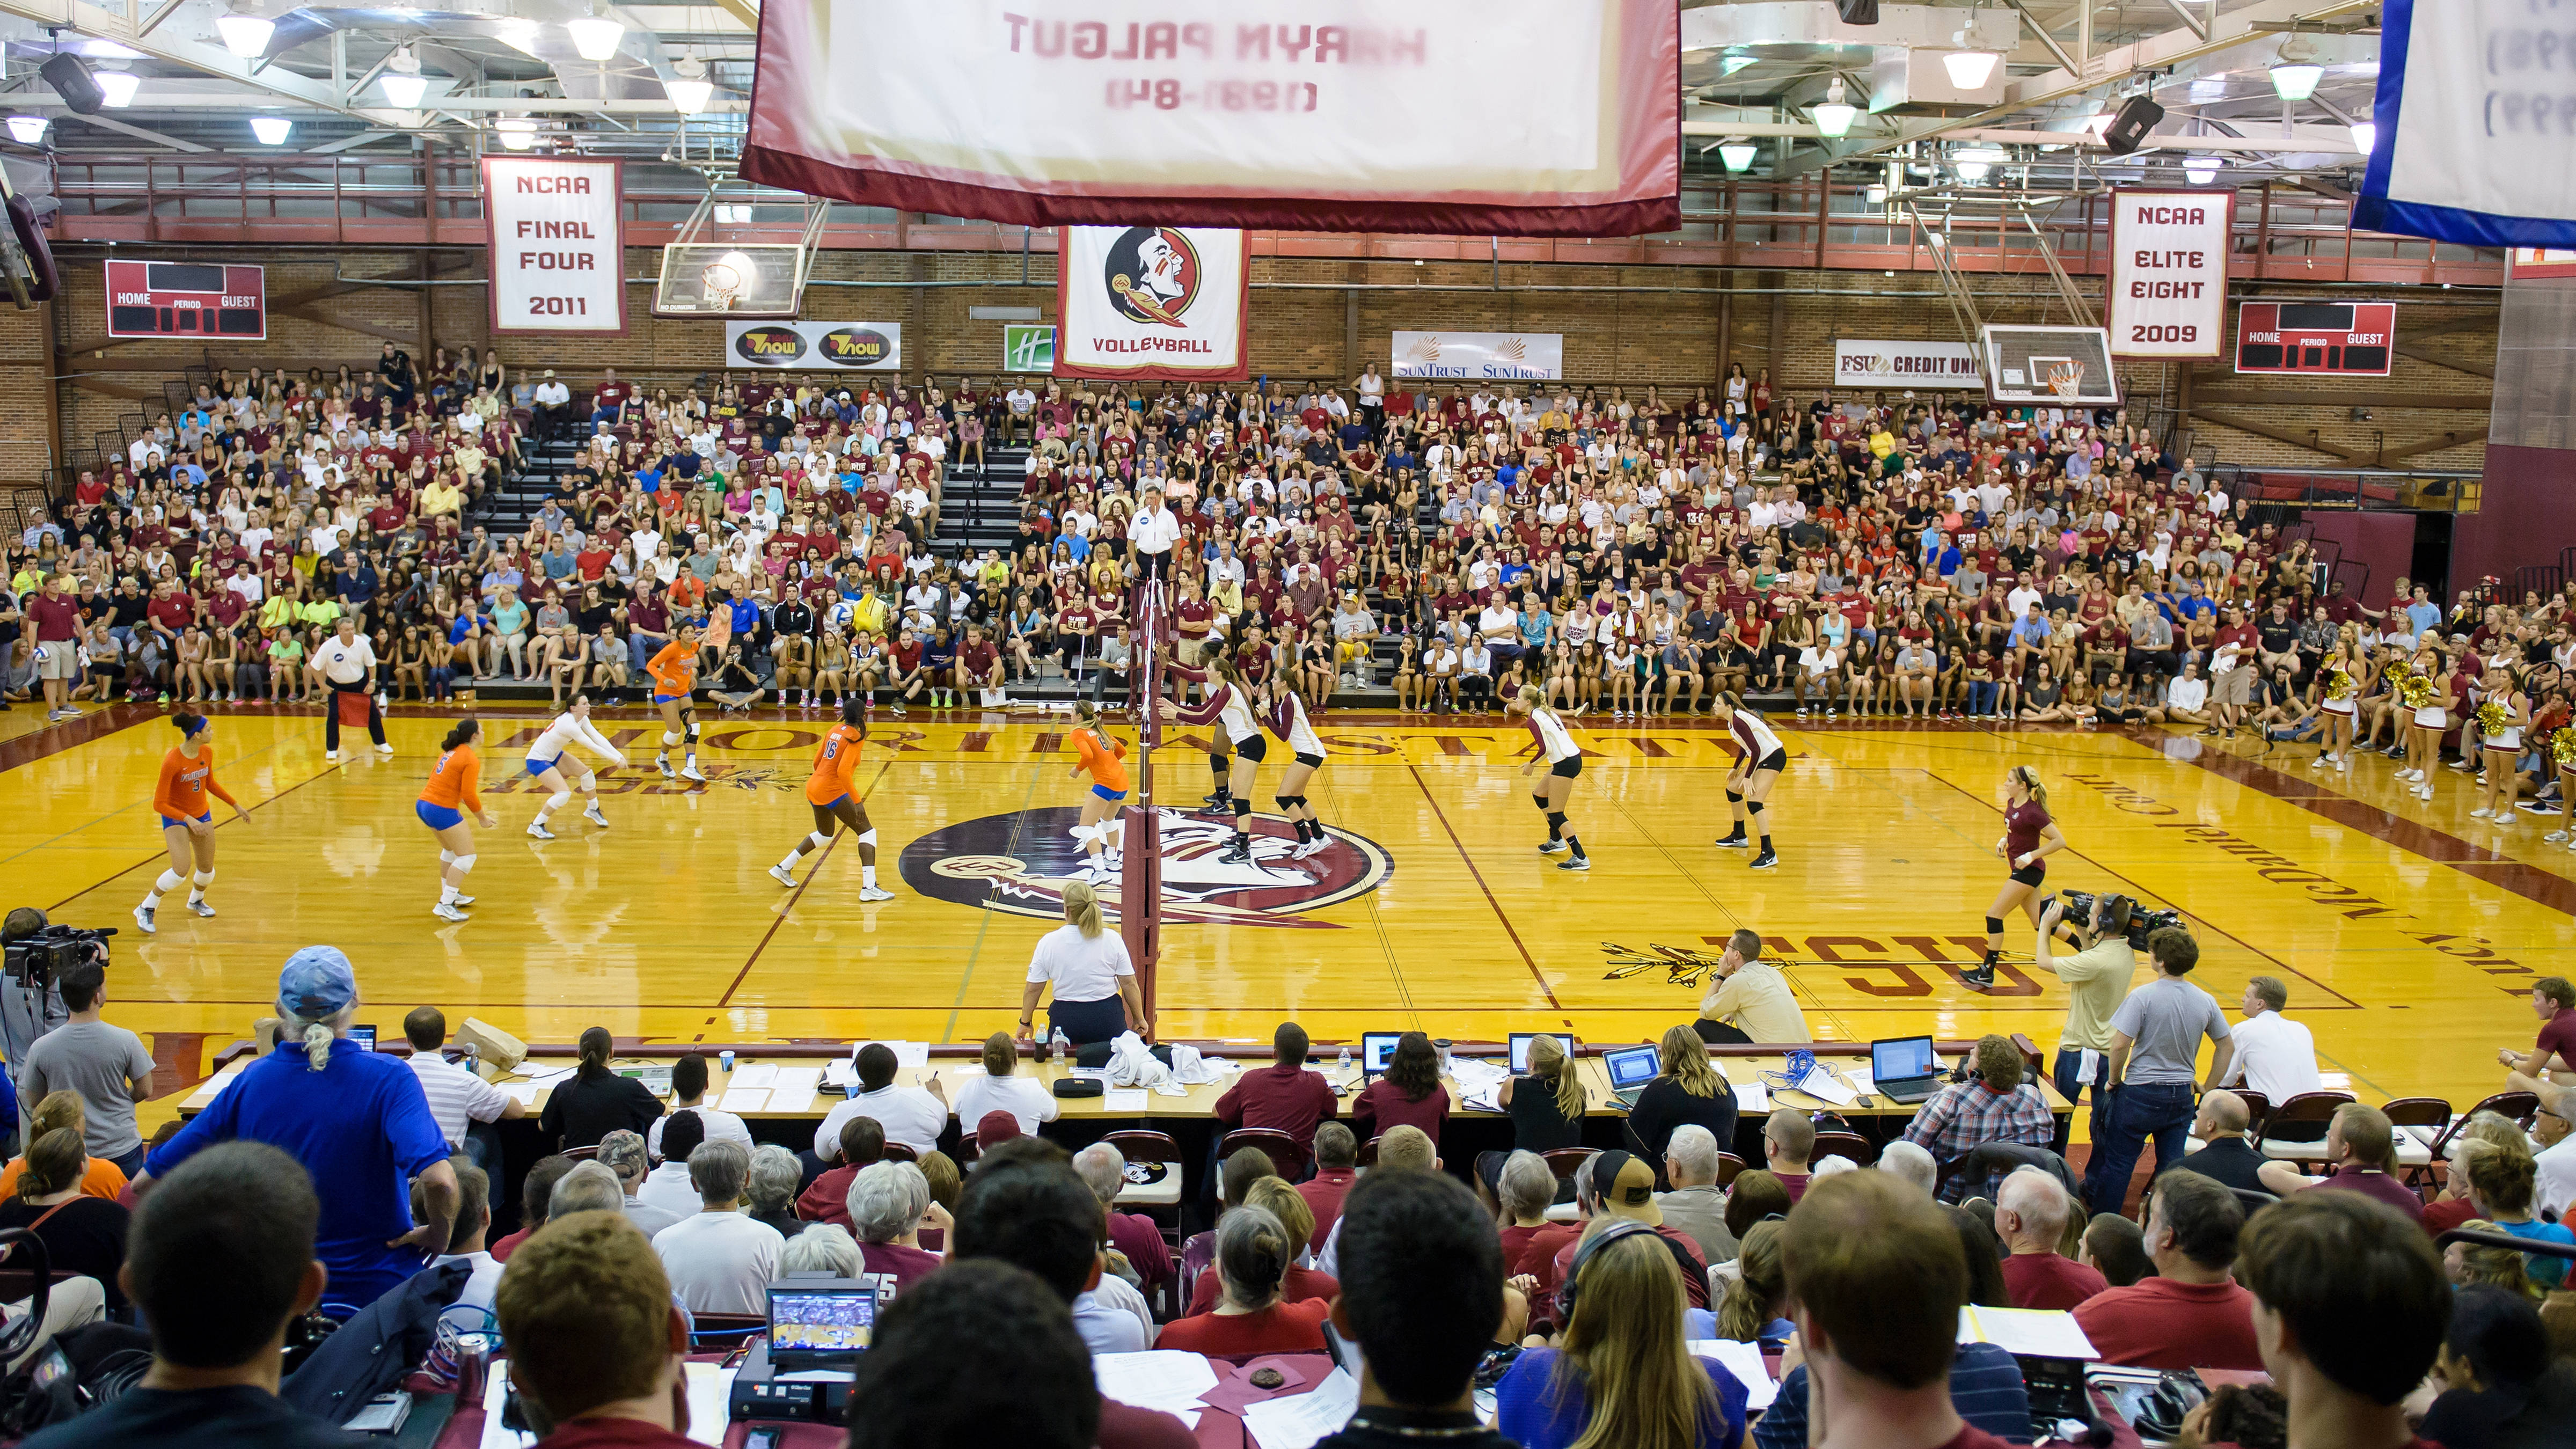 The crowd in Tully Gym was awesome in the 3-2 win.